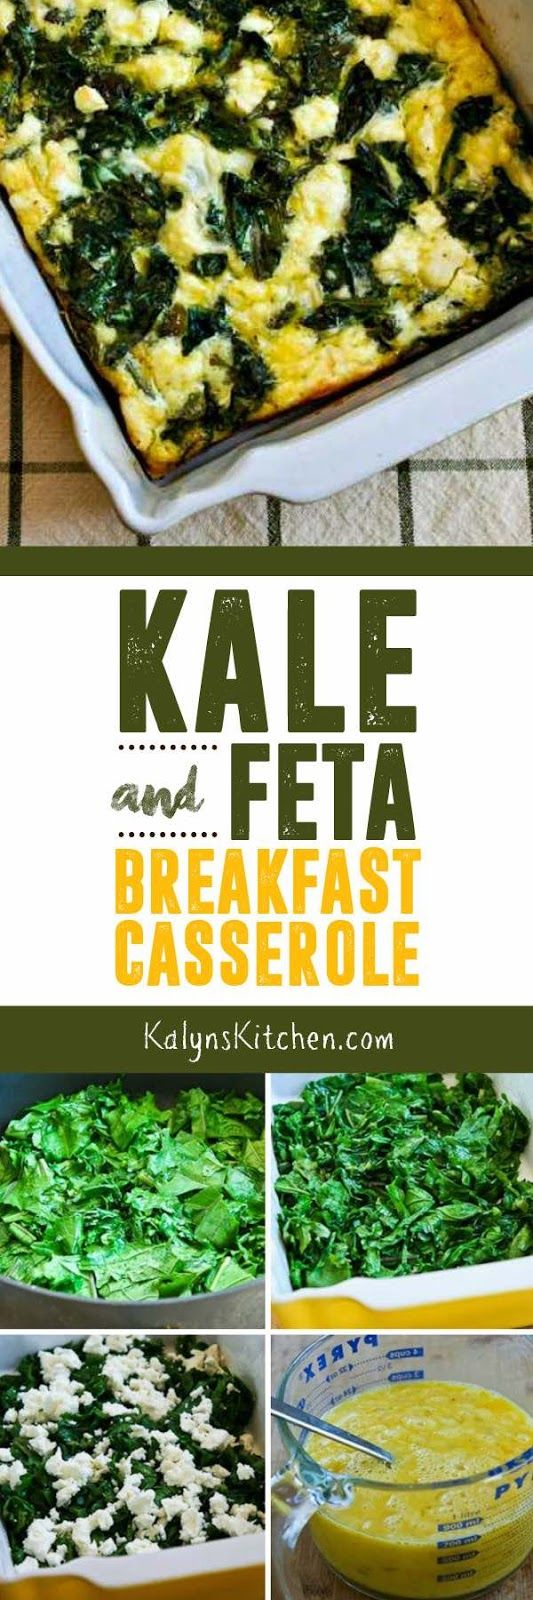 Kale and Feta Breakfast Casserole is a tasty combination that's low ...